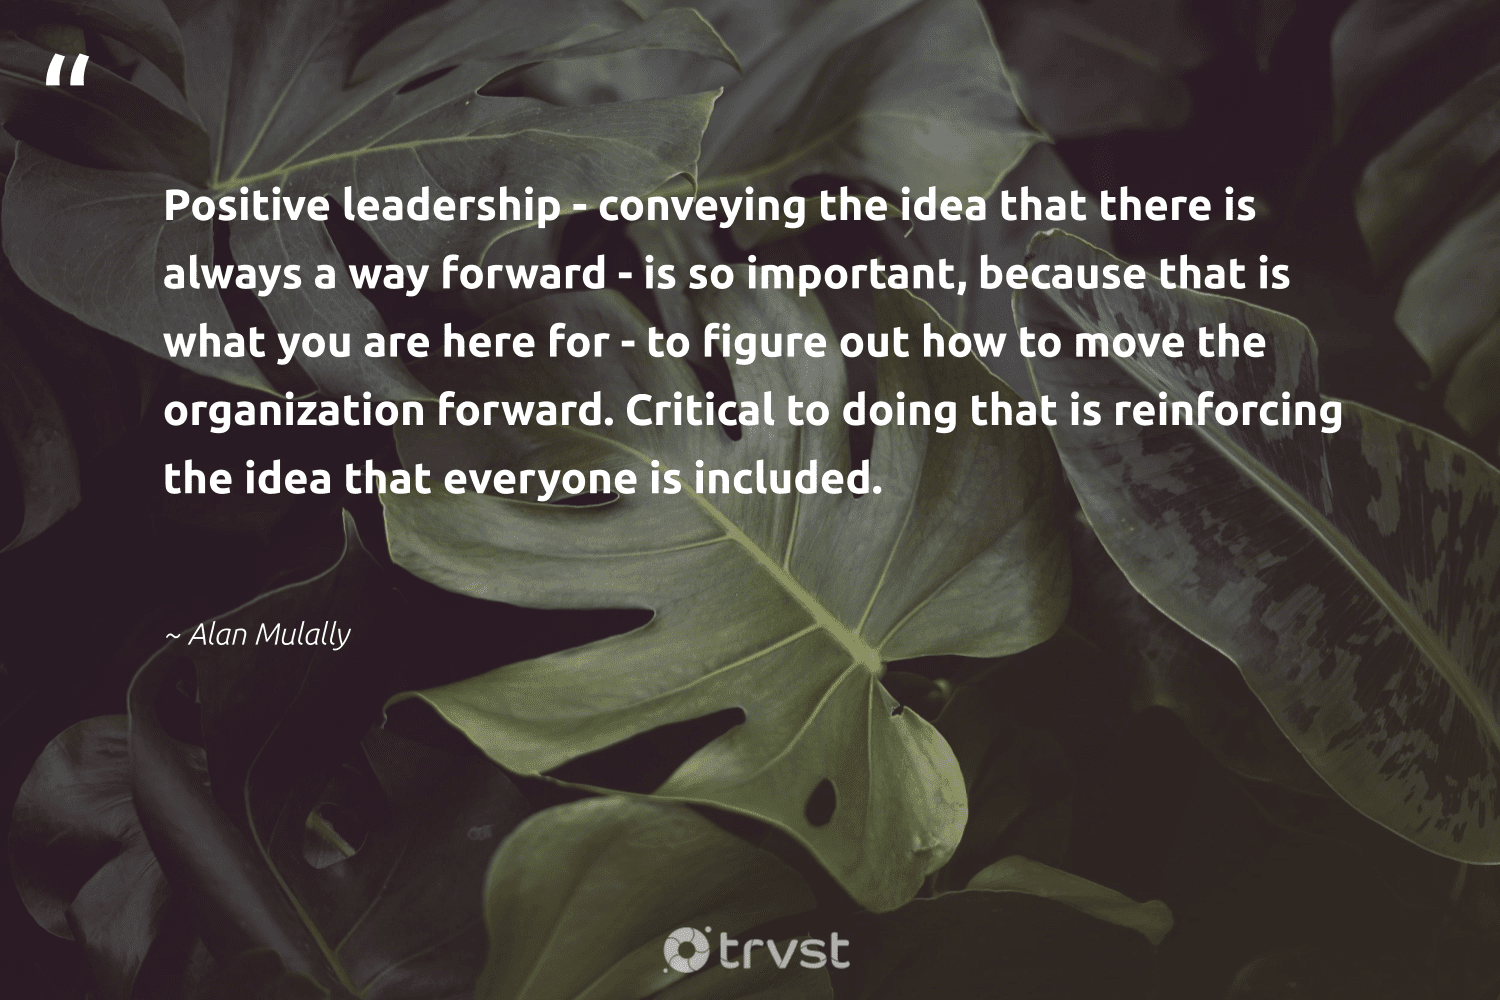 """Positive leadership - conveying the idea that there is always a way forward - is so important, because that is what you are here for - to figure out how to move the organization forward. Critical to doing that is reinforcing the idea that everyone is included.""  - Alan Mulally #trvst #quotes #leadership #leadershipdevelopment #begreat #nevergiveup #collectiveaction #leadershipqualities #futureofwork #softskills #dogood #leadershipskills"